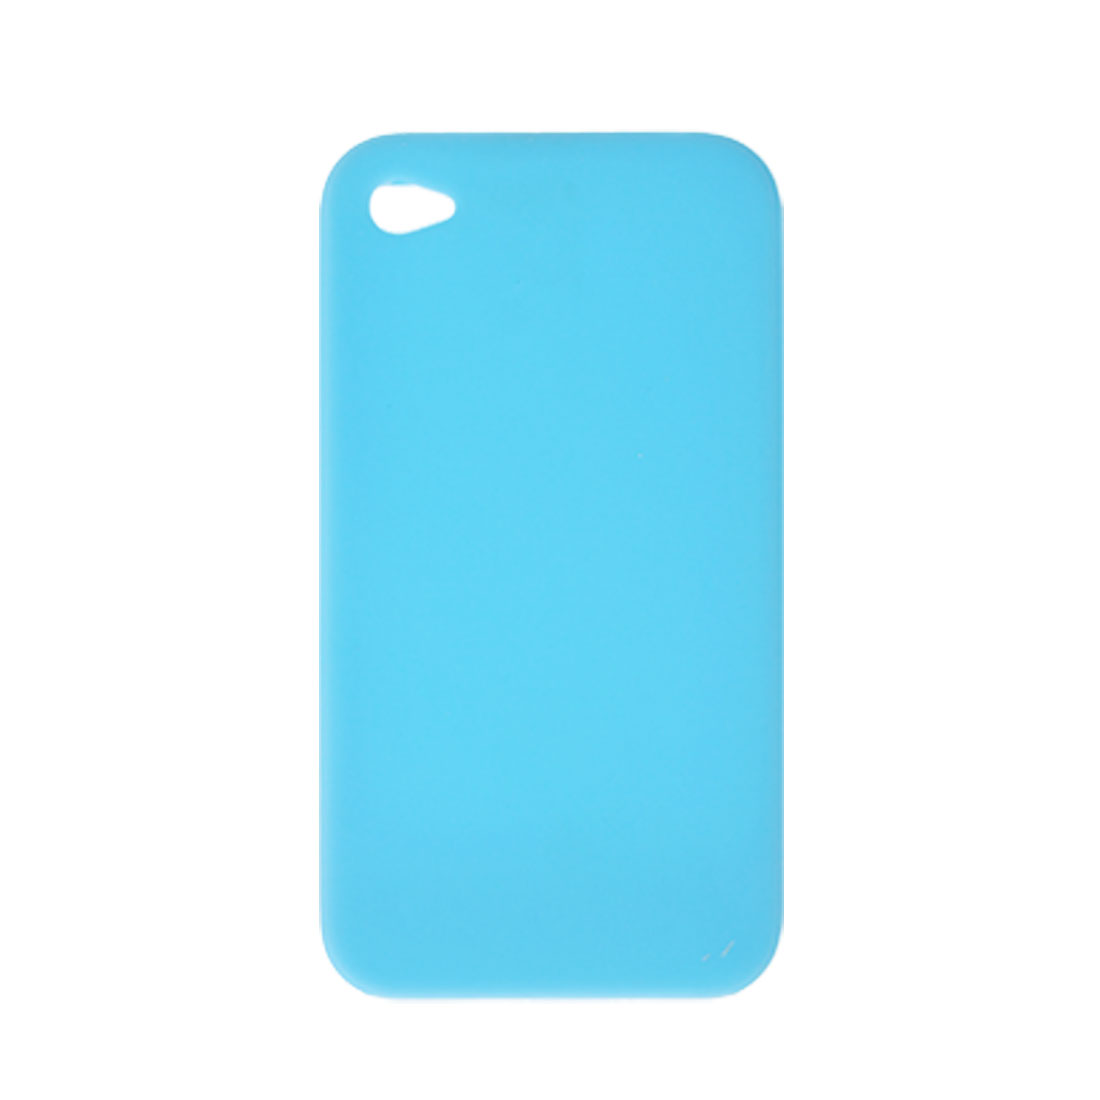 Skyblue Soft Silicone Pressing Button Case Cover for iPhone 4 4G